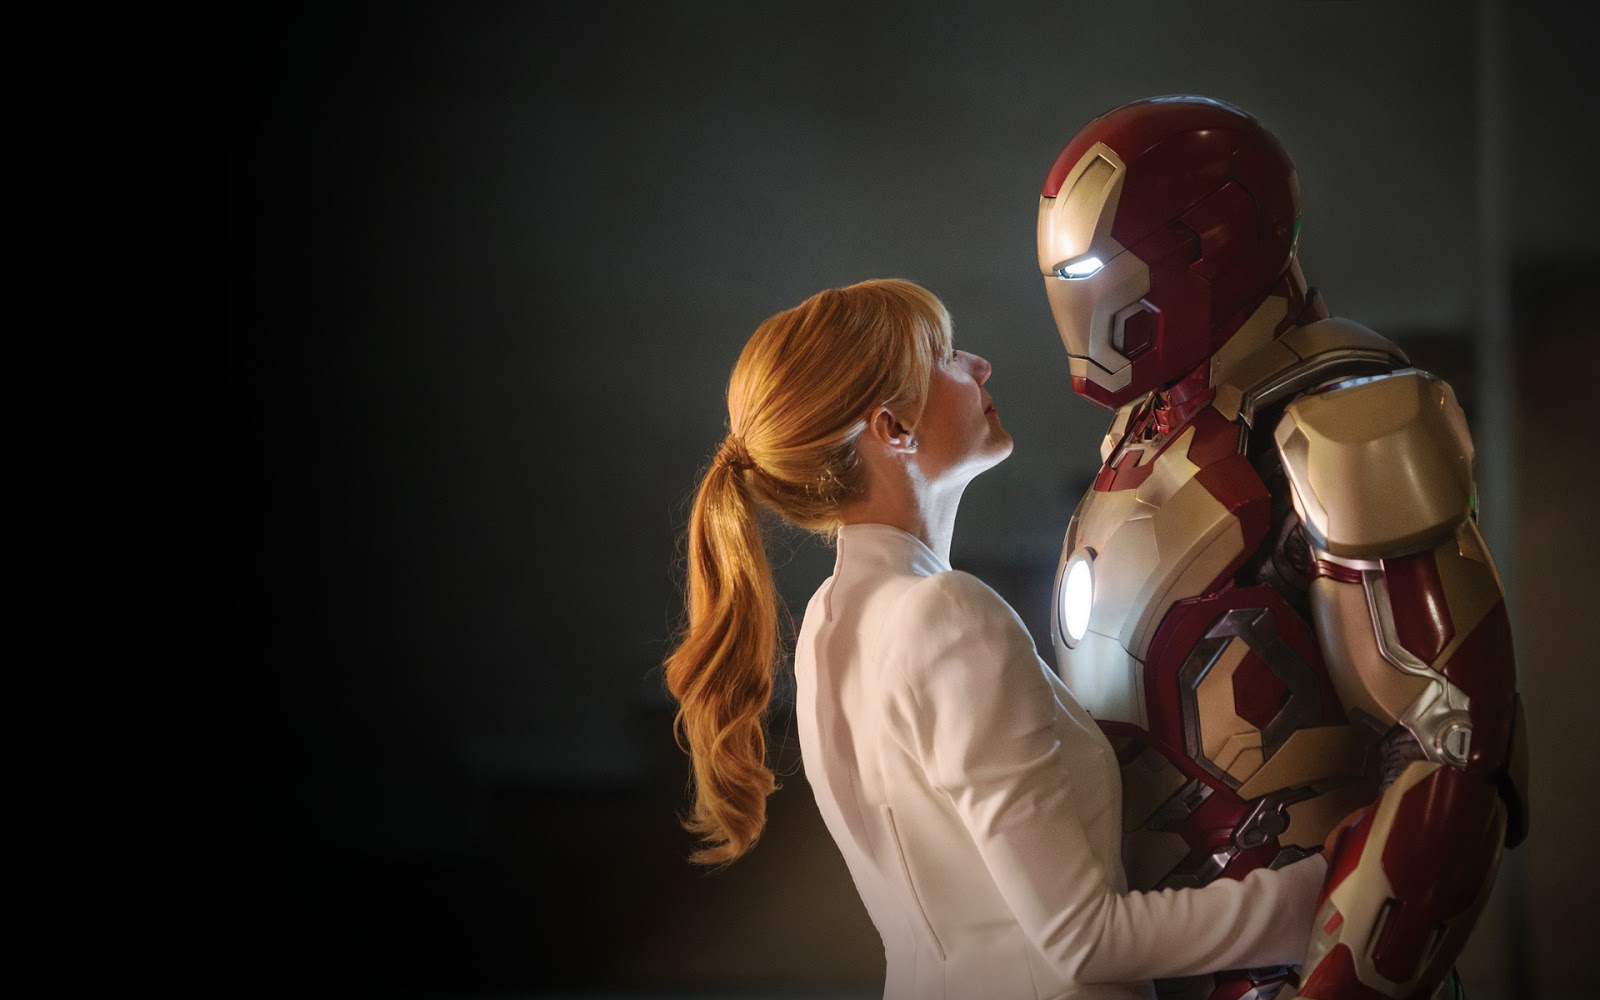 Best Wallpapers Hd Iron Man 3 Movie Wallpapers